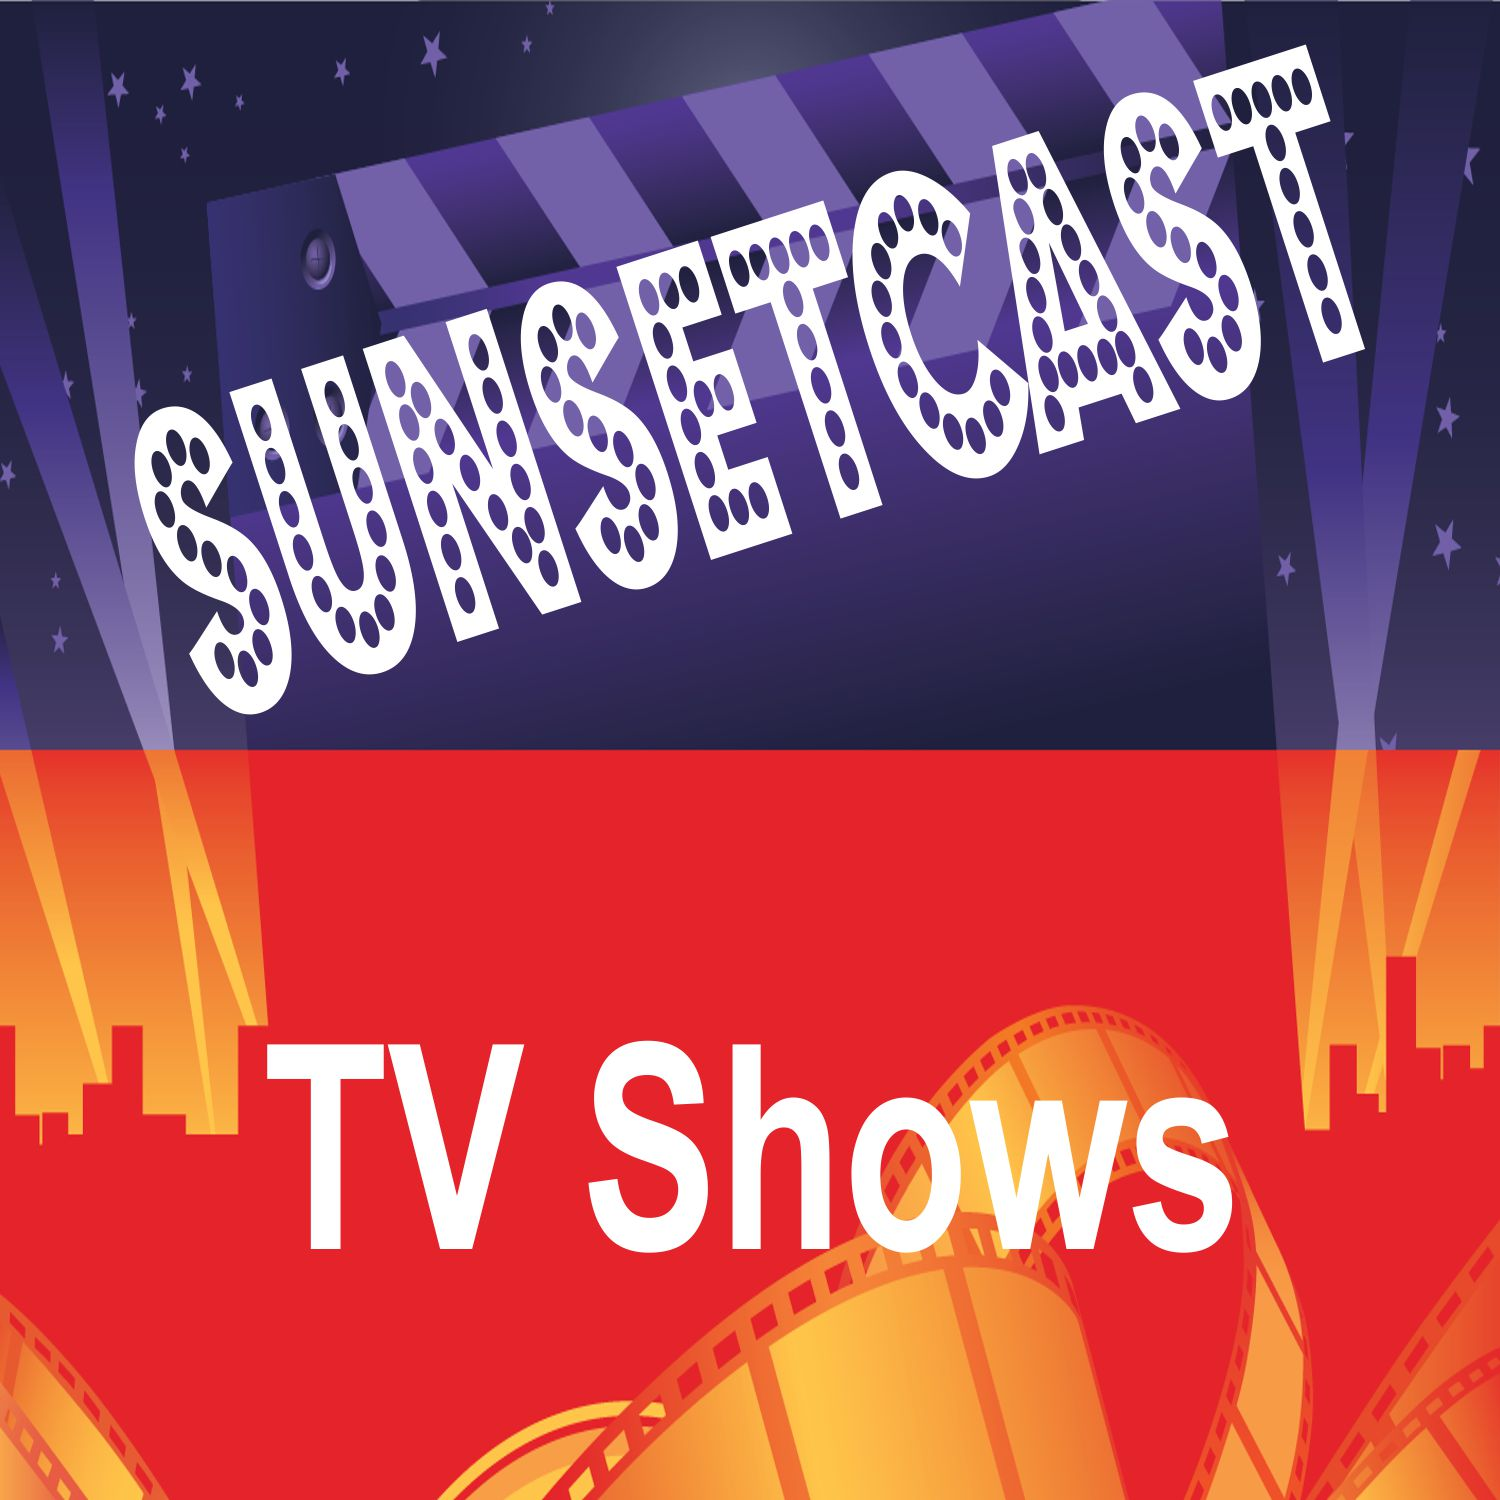 SunsetCast - TV Shows